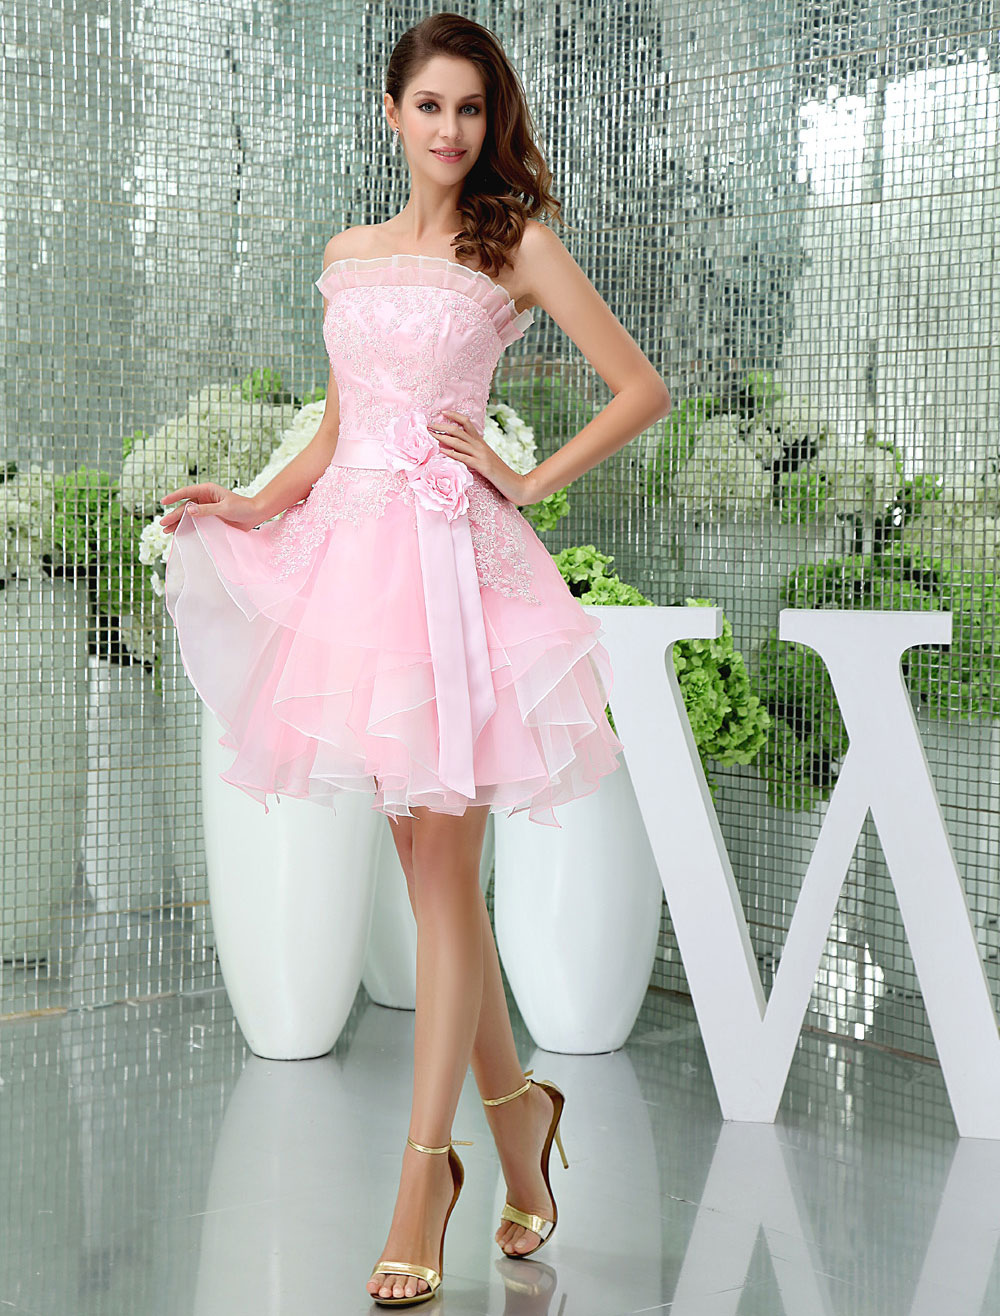 Buy Strapless Homecoming Dress Ruffles Neckline Lace Beading Organza Cocktail Dress Short Prom Dress Milanoo for $128.69 in Milanoo store